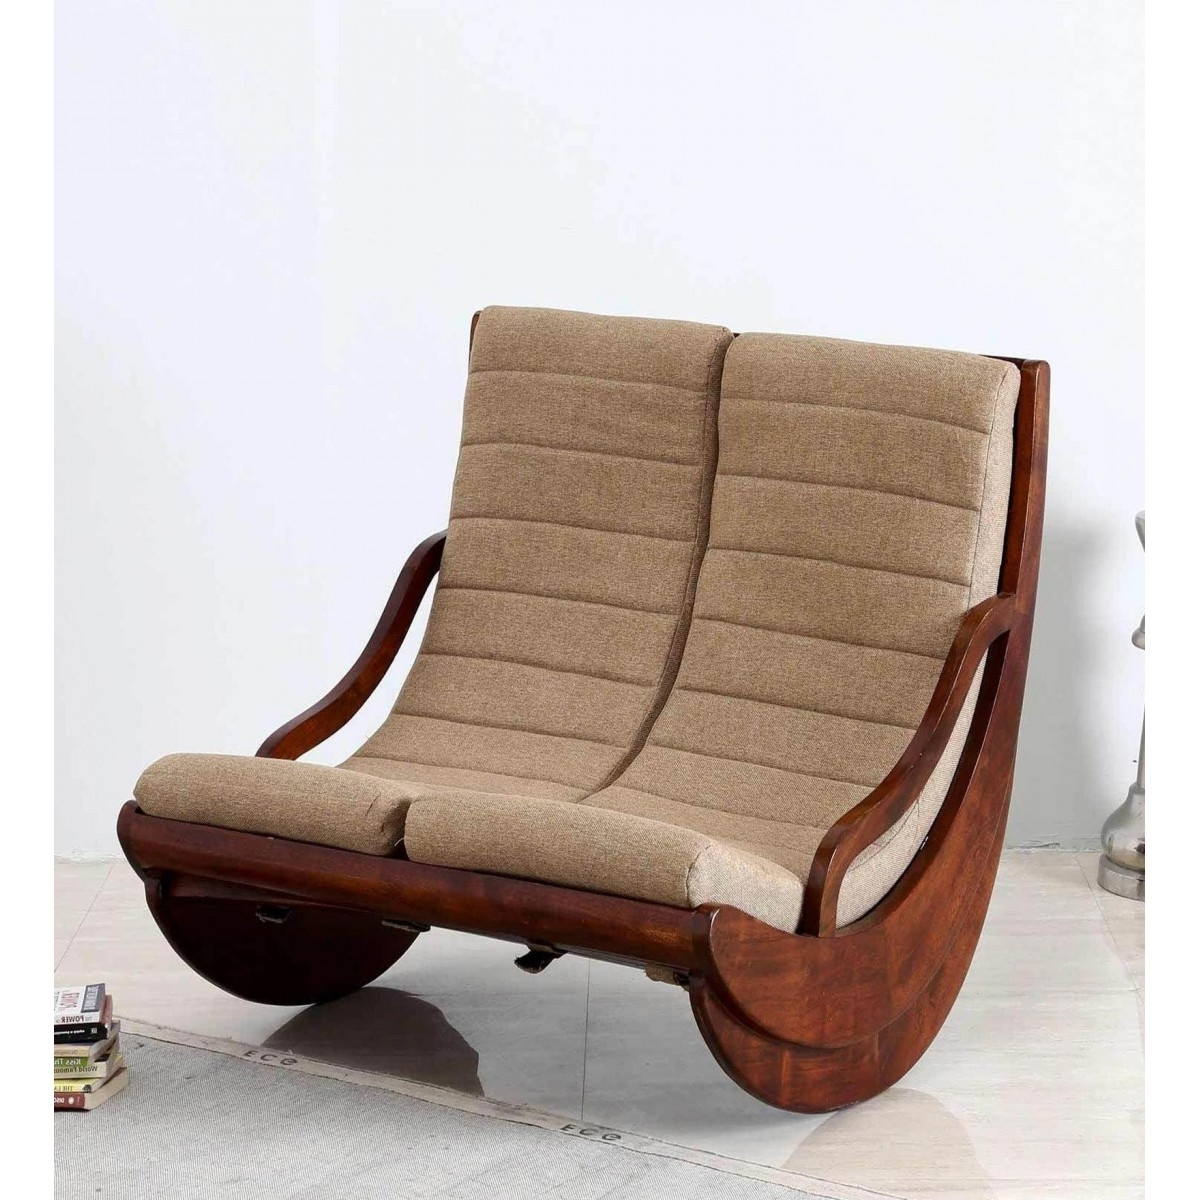 Rocking Chairs Regarding Popular Best Wooden Stylish Designed Rocking Chair Online !! (View 12 of 15)